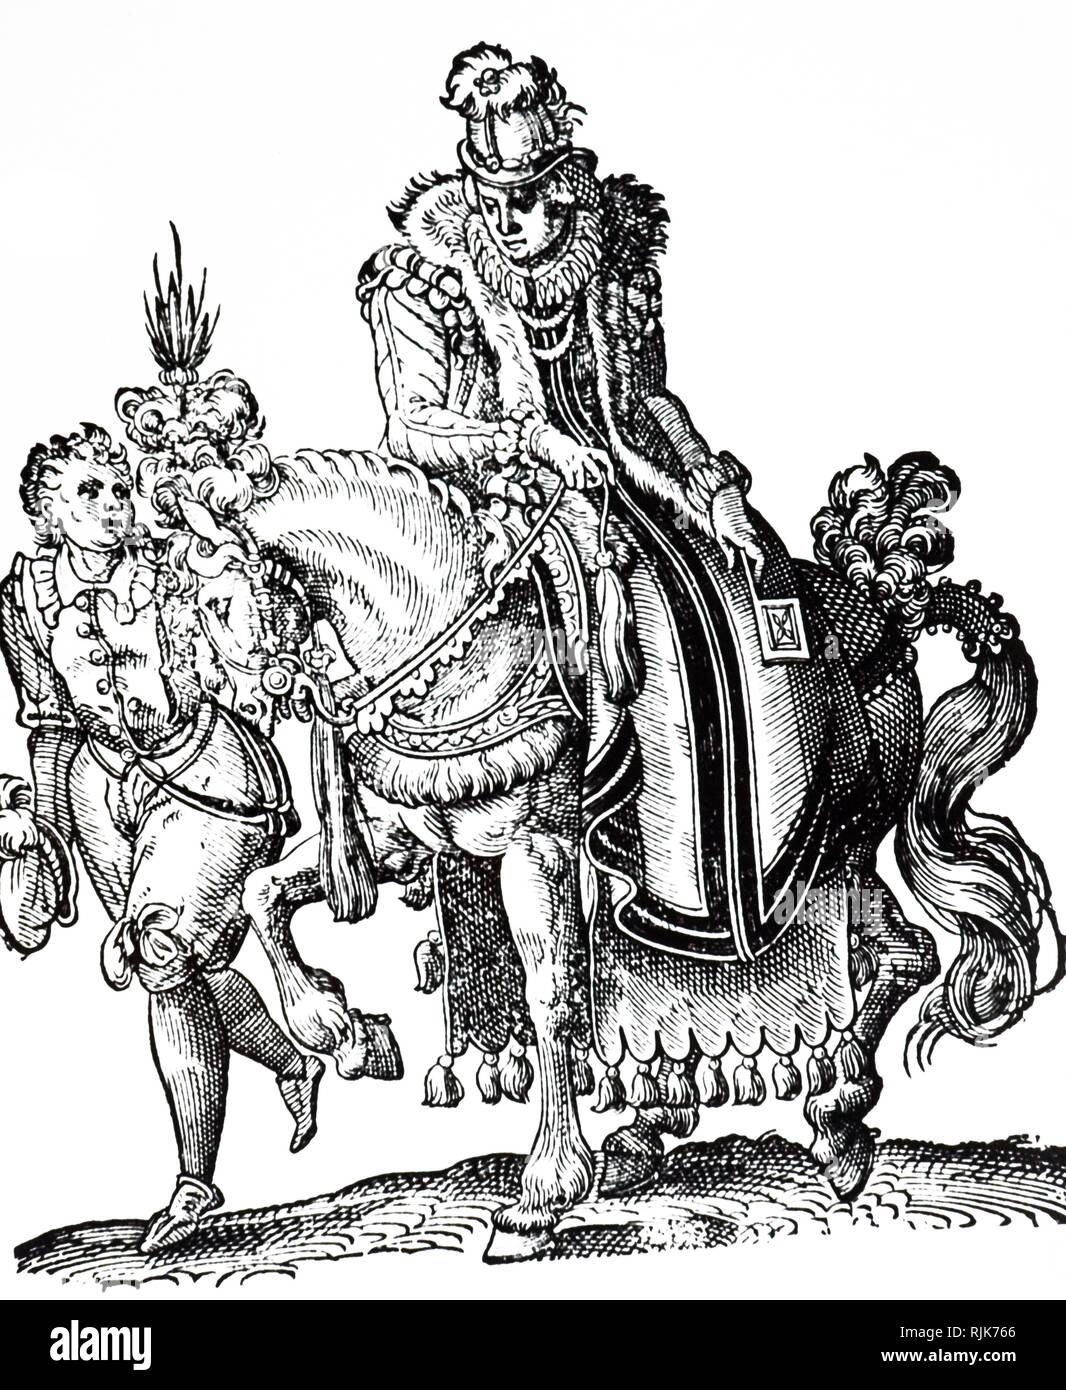 A woodcut engraving depicting a lady riding side-saddle attended by a servant. Woodcut by Jost Amman (1539-1591) a Swiss-German artist. Dated 16th century - Stock Image